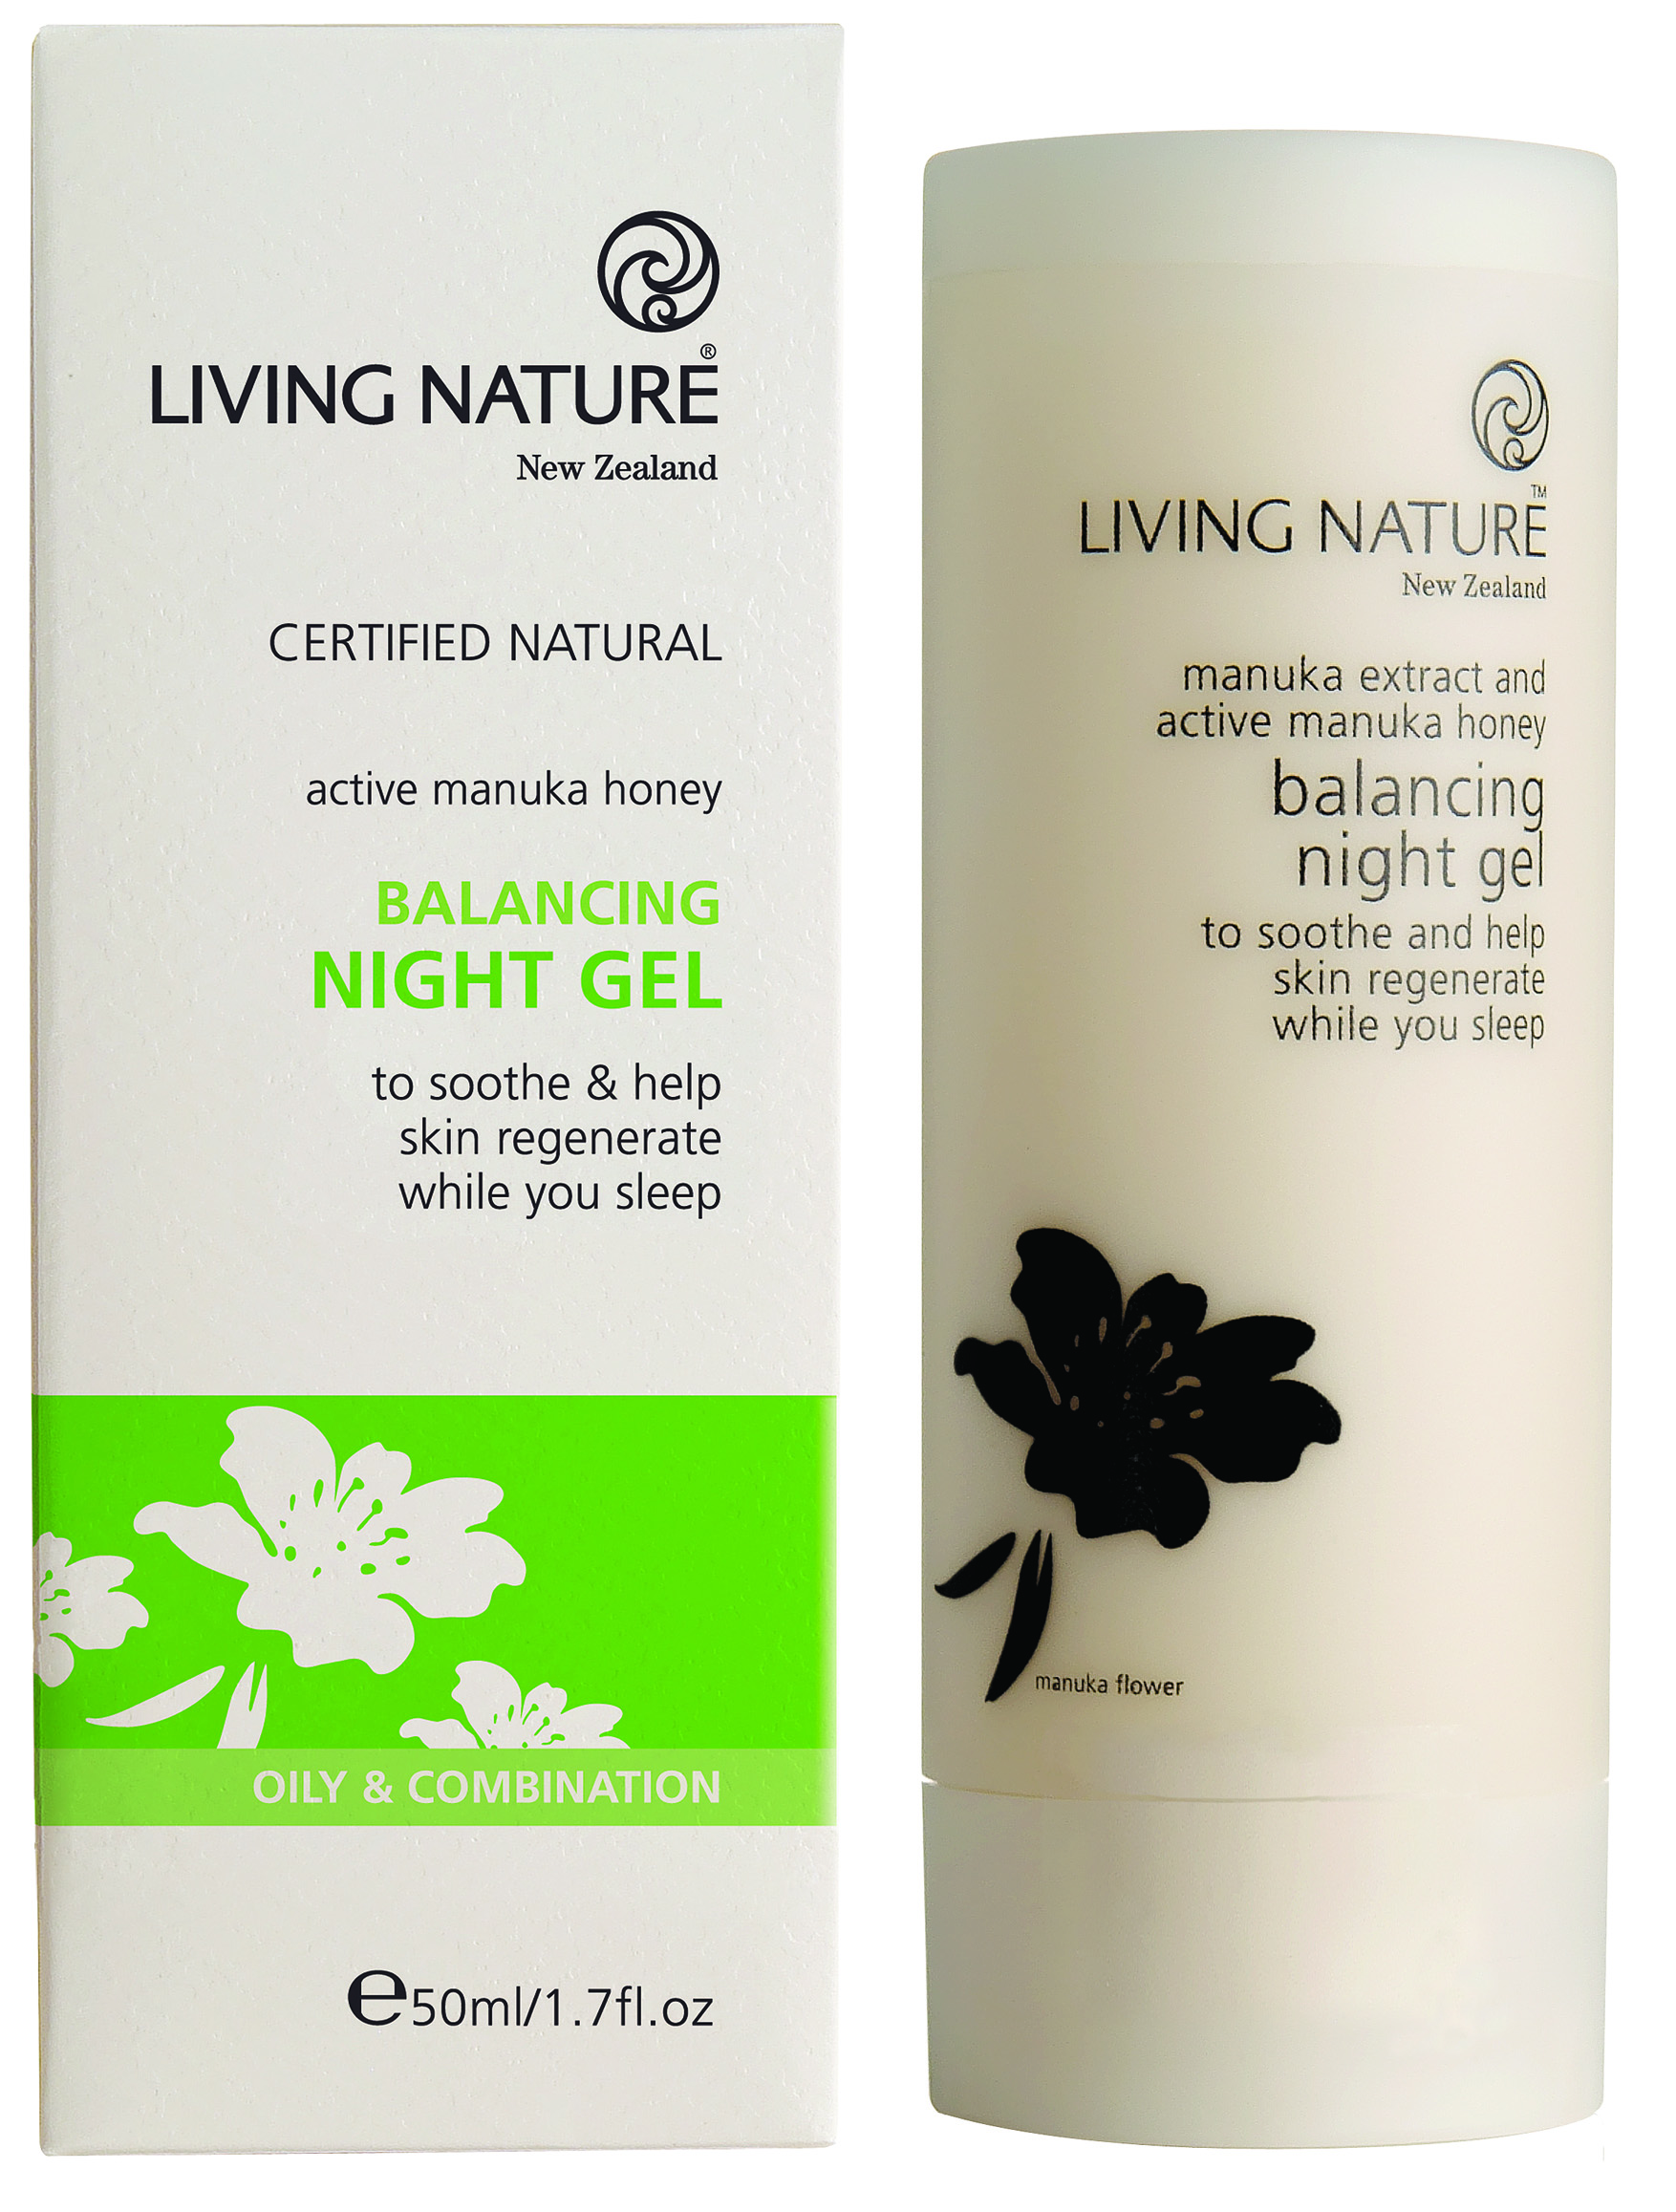 ACNE-Balancing Night Gel